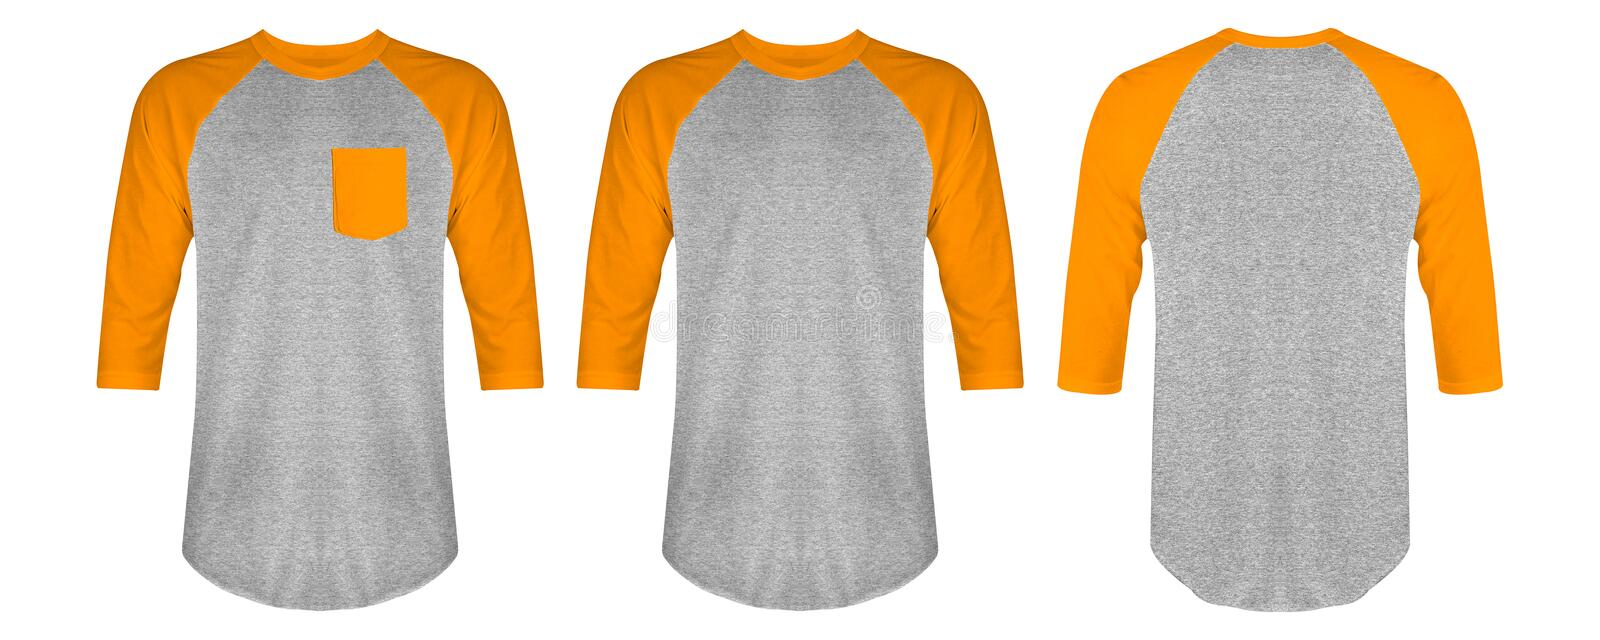 da702ecf6 Blank t shirt raglan 3/4 sleeves pack front and back view with heather grey